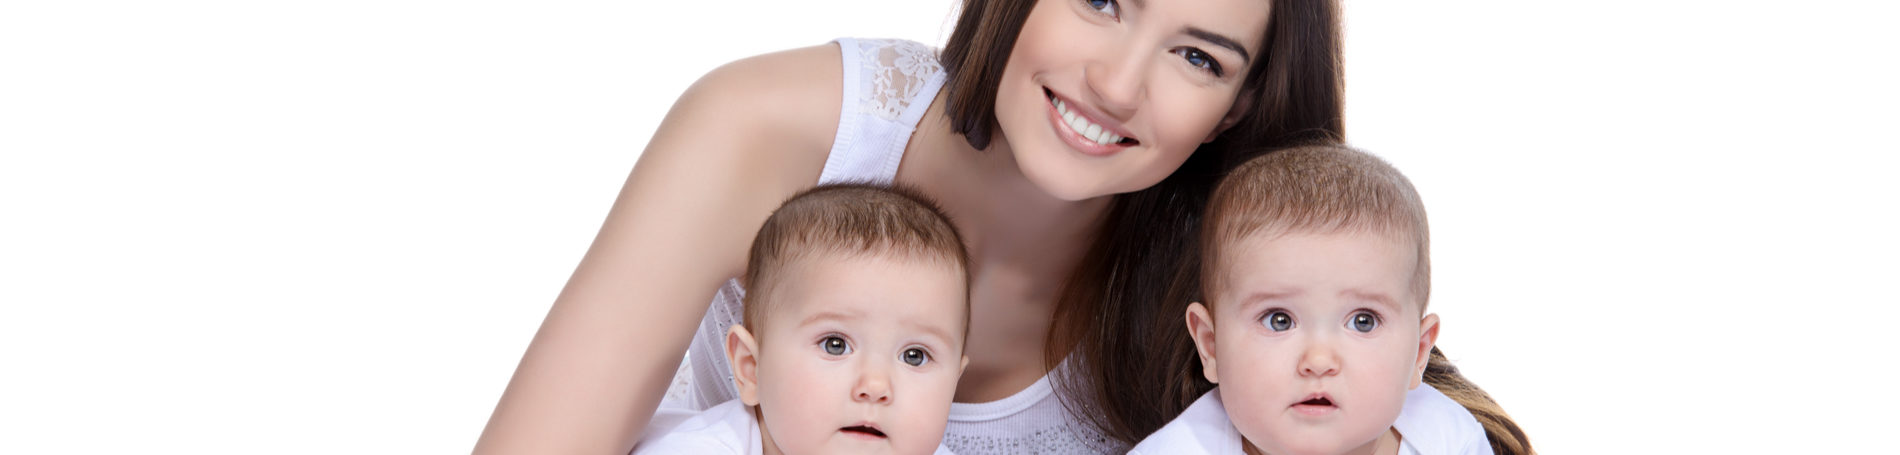 Dark haired mother smiling behind her twin babies